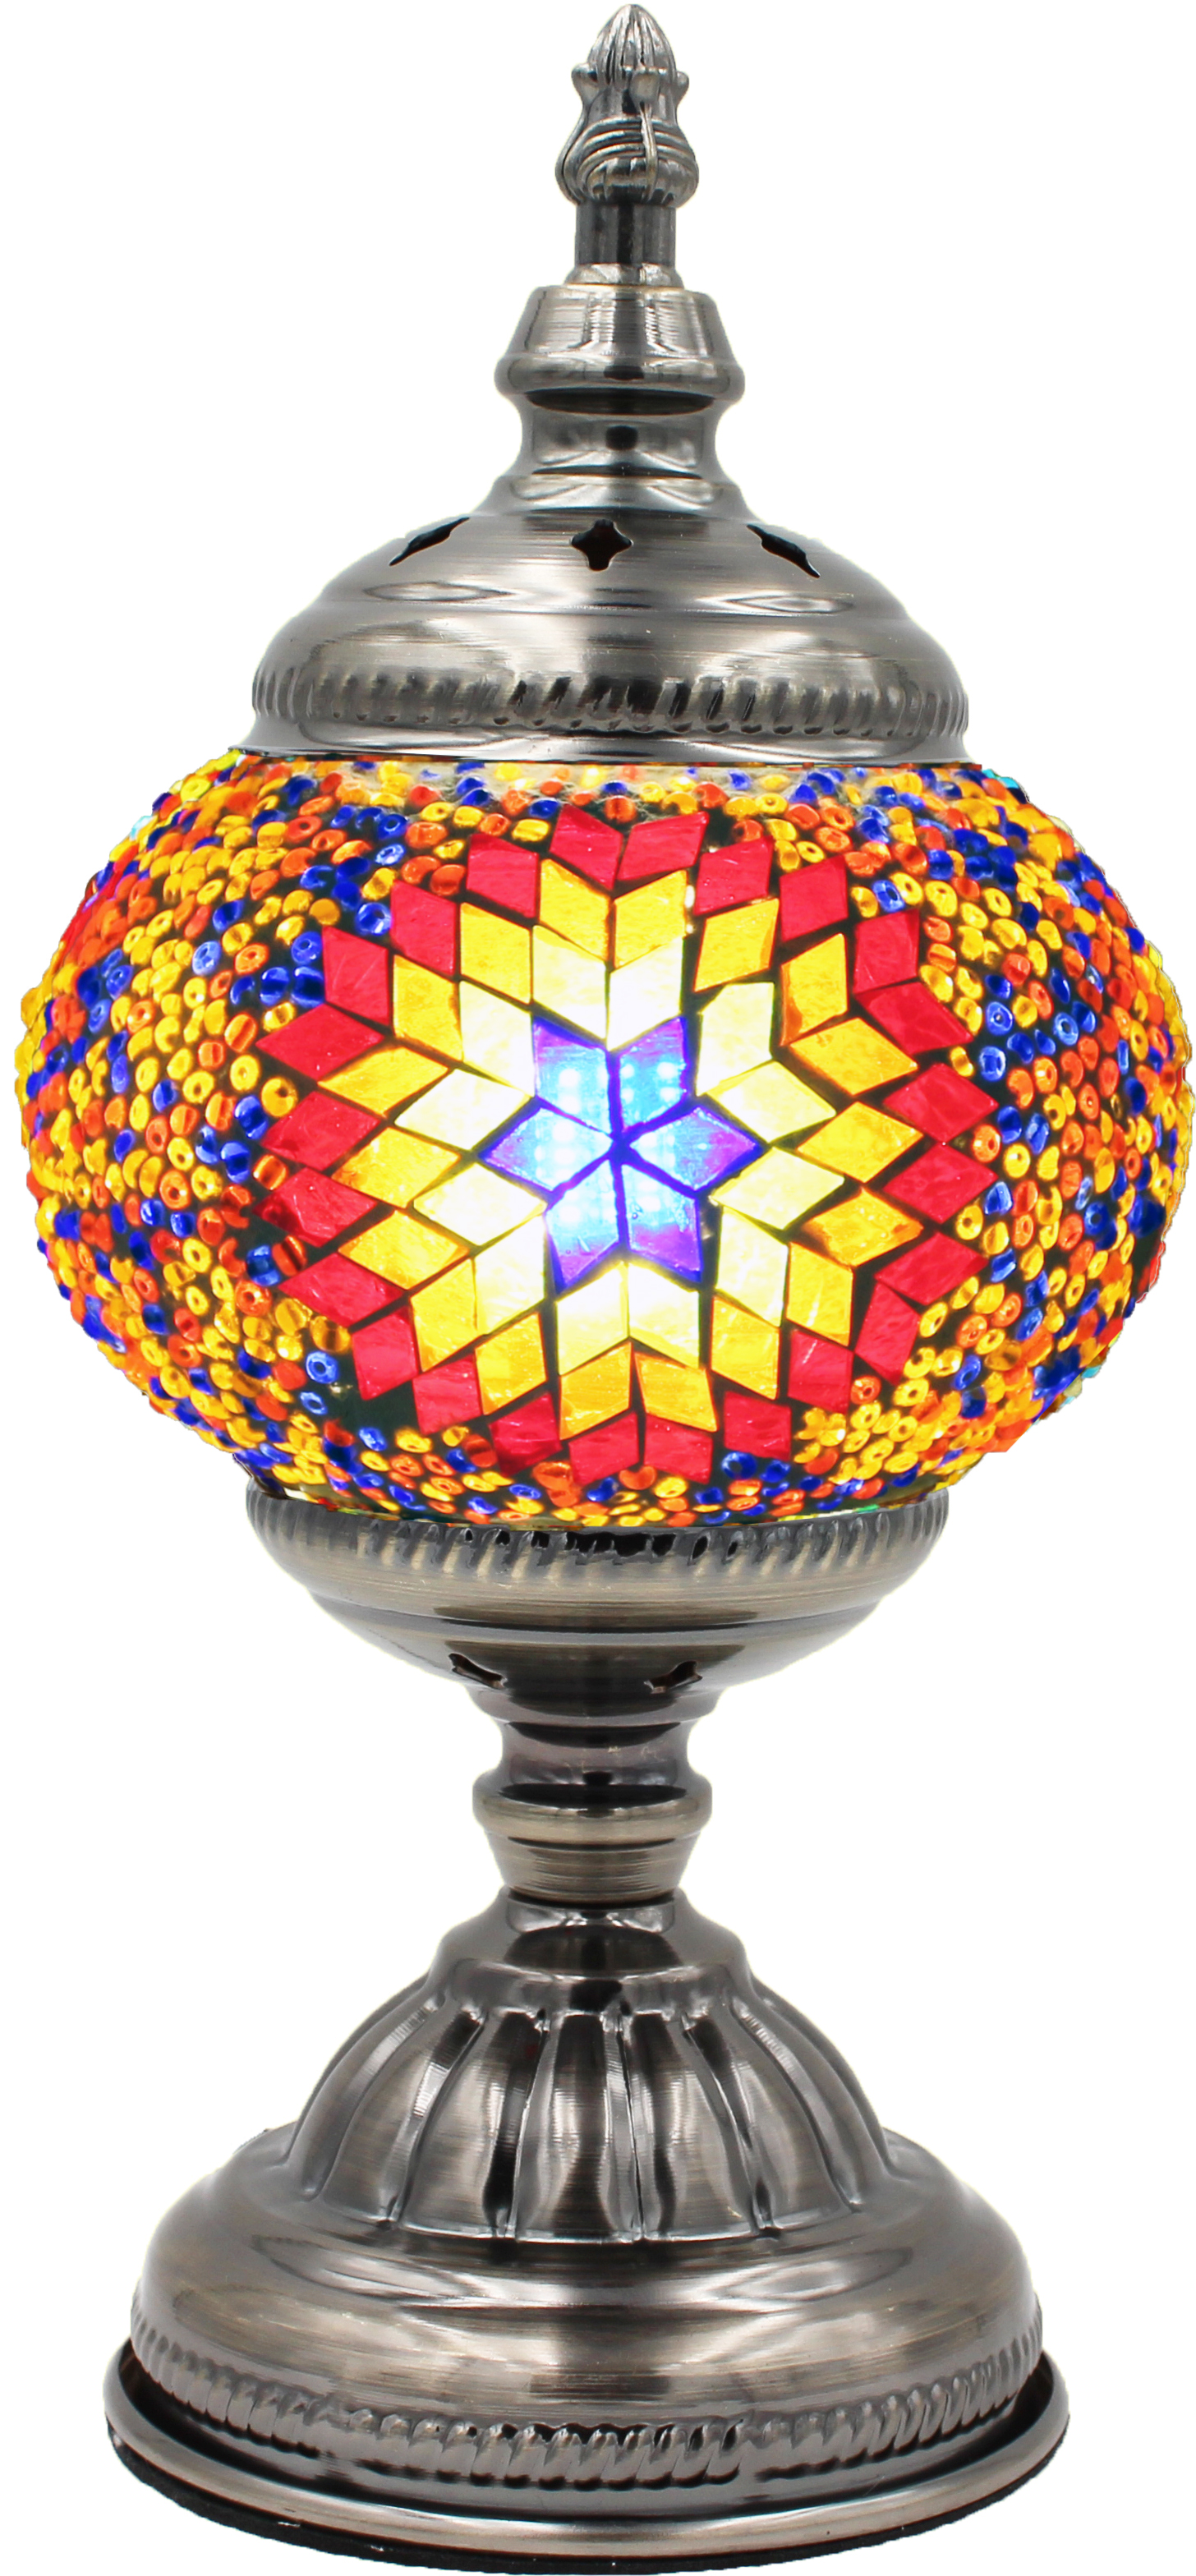 Hand Made Mosaic Glass Lamp - Without Bulb (002)